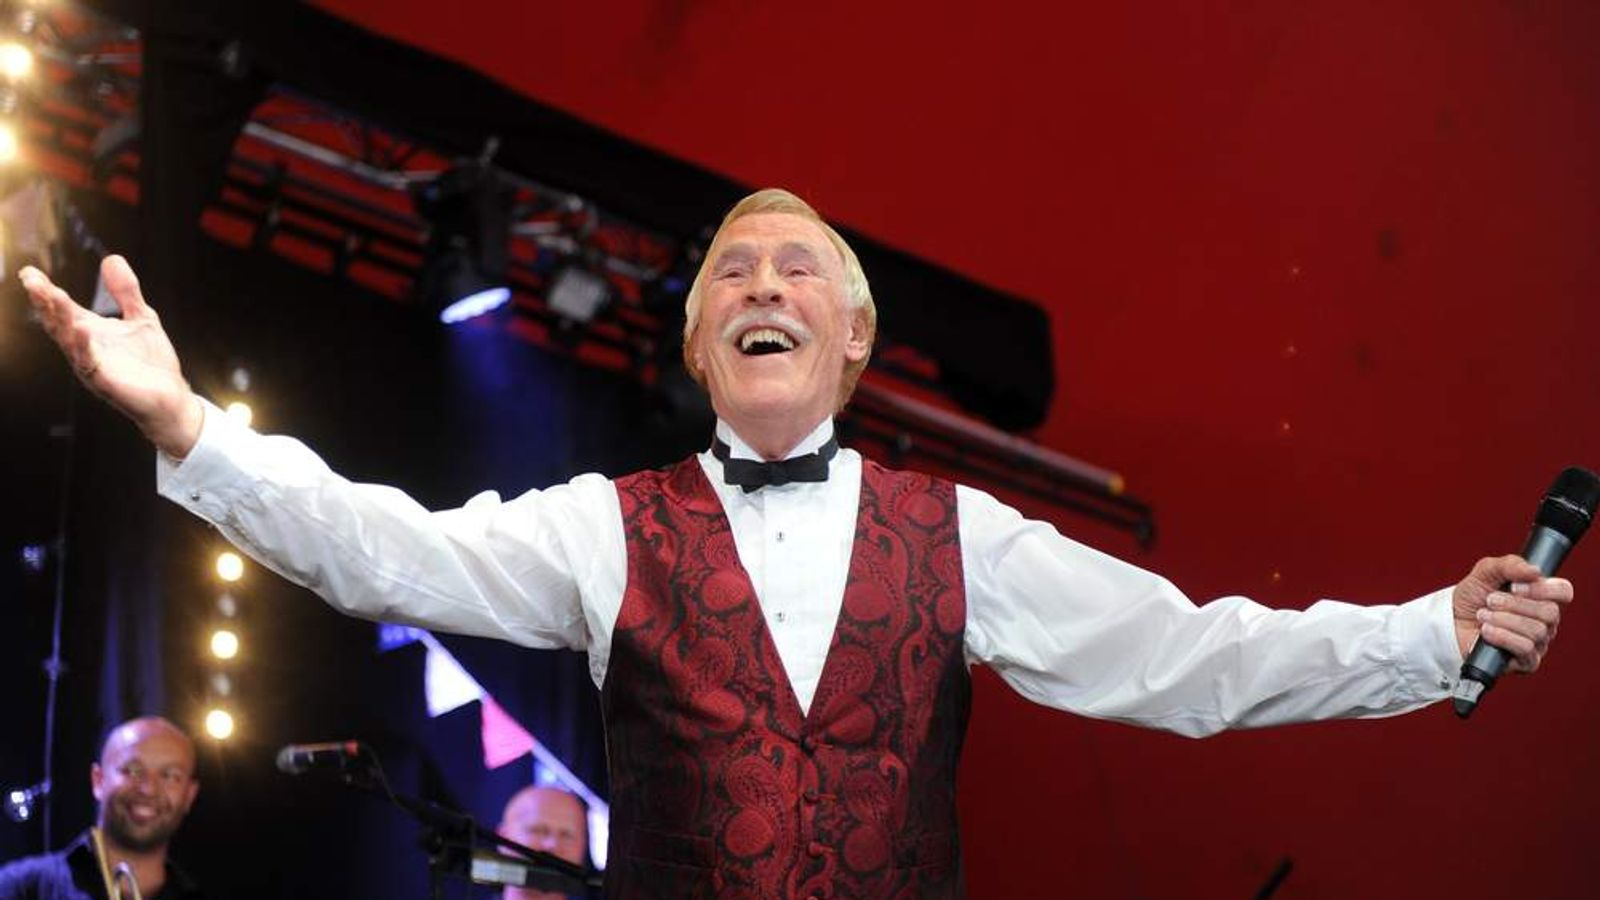 Sir Bruce Forsyth performing on the Avalon stage at the Glastonbury 2013 Festival